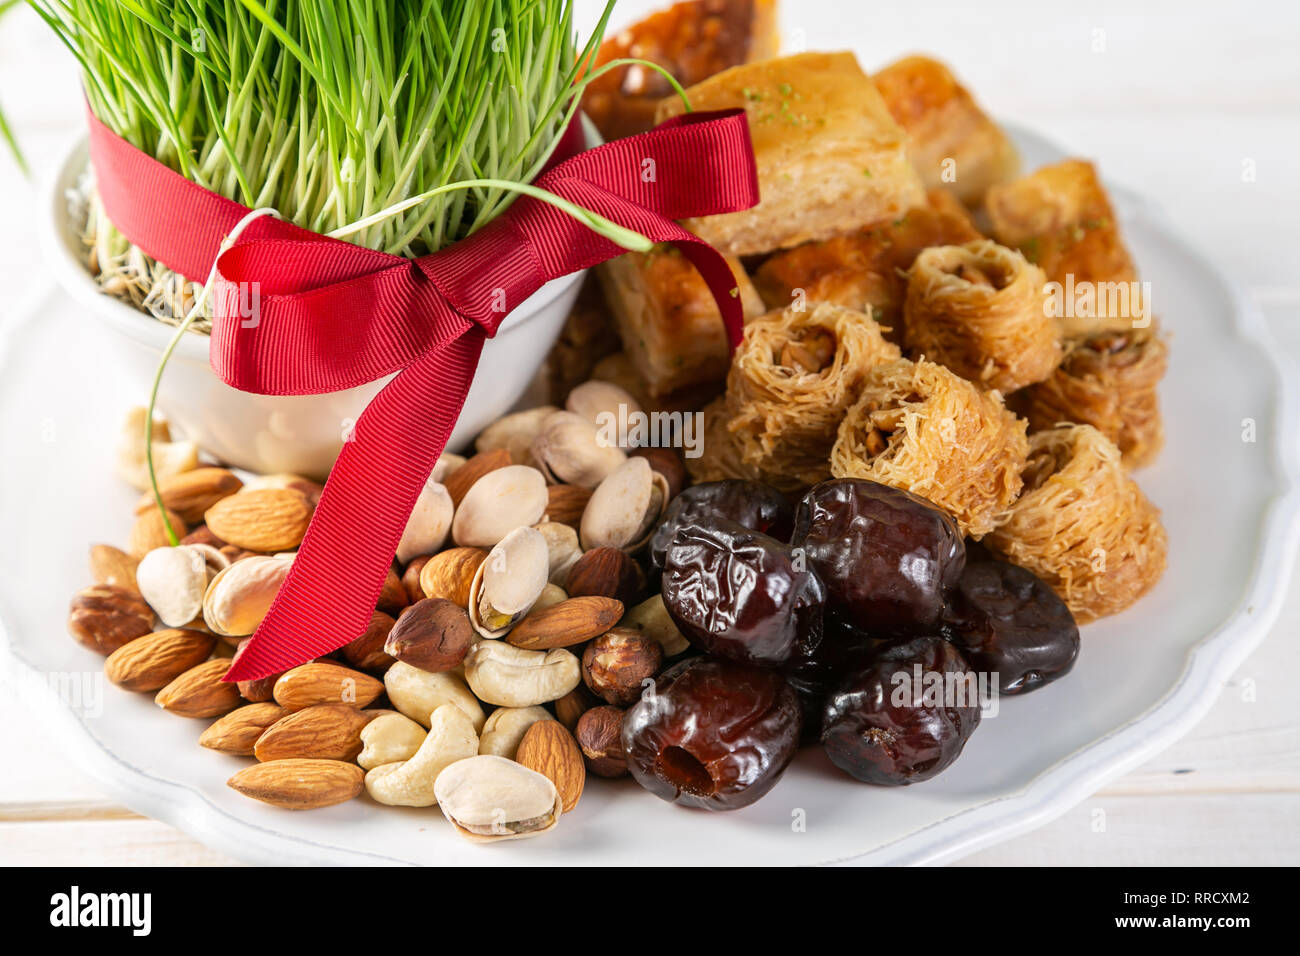 Nowruz holiday concept - grass, baklava sweets, nuts and seeds - Stock Image